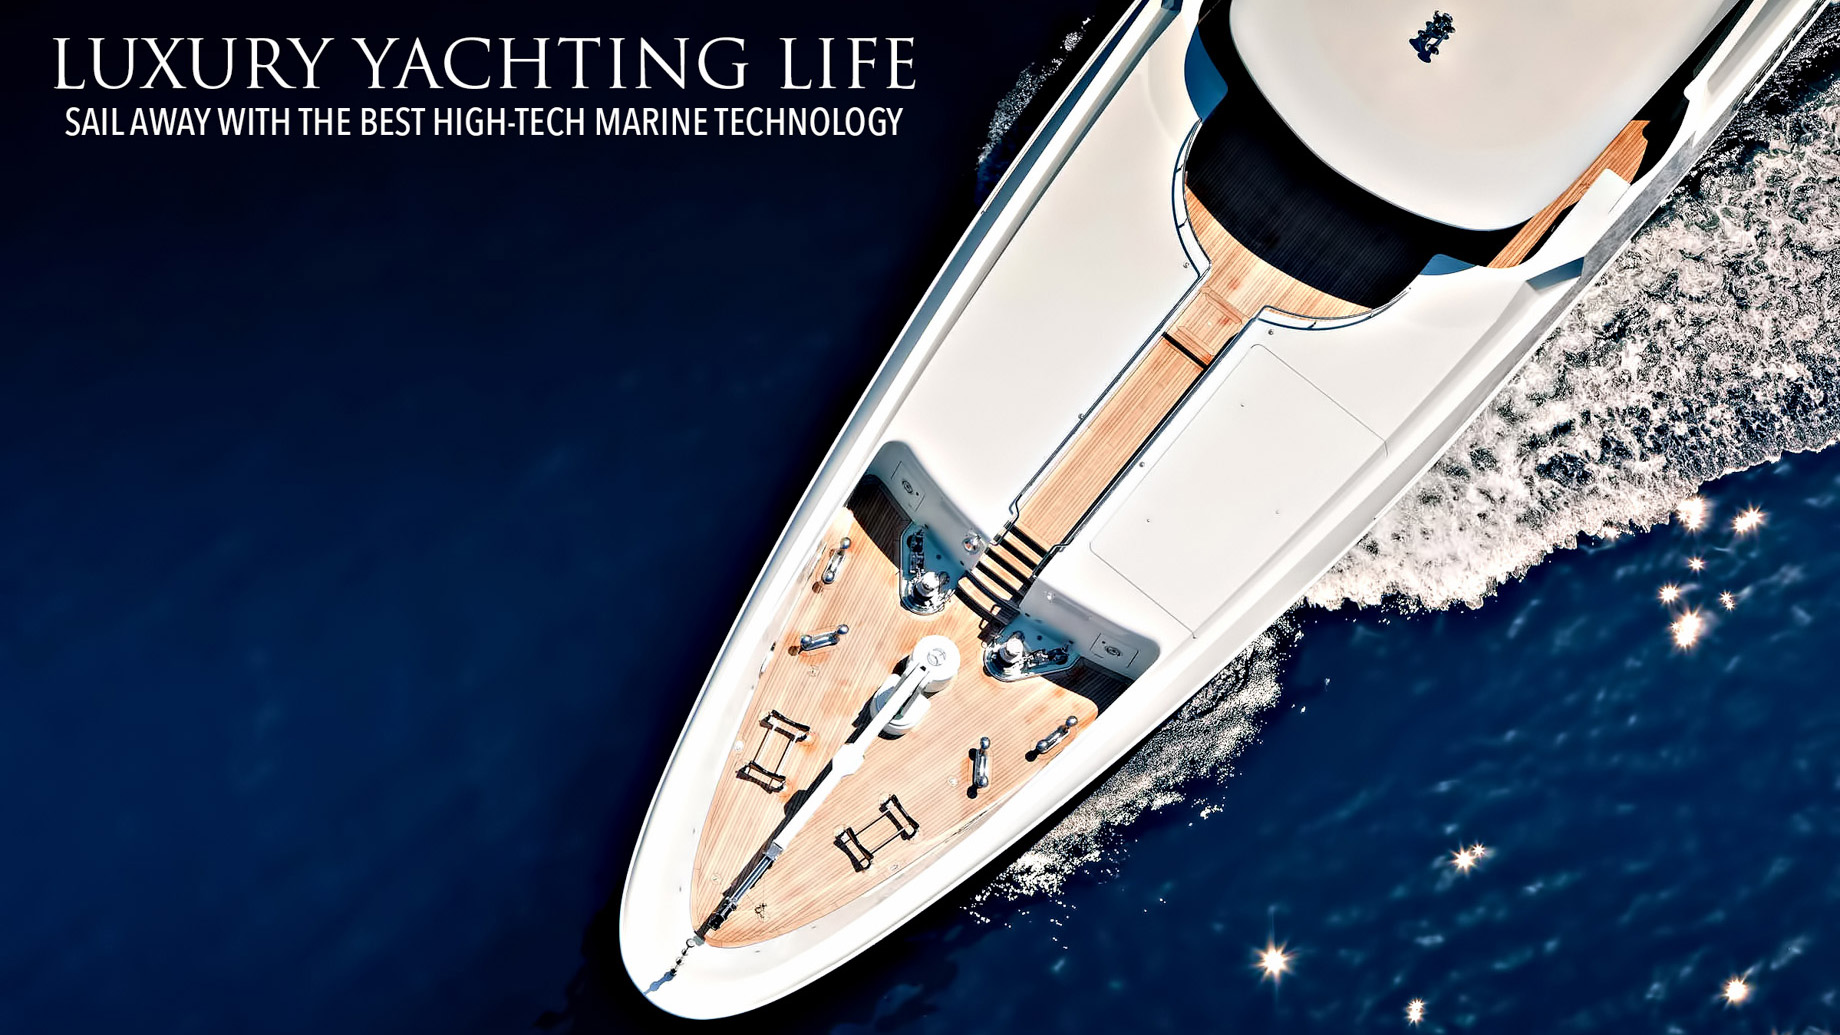 Luxury Yachting Life - Sail Away with the Best High-Tech Marine Technology